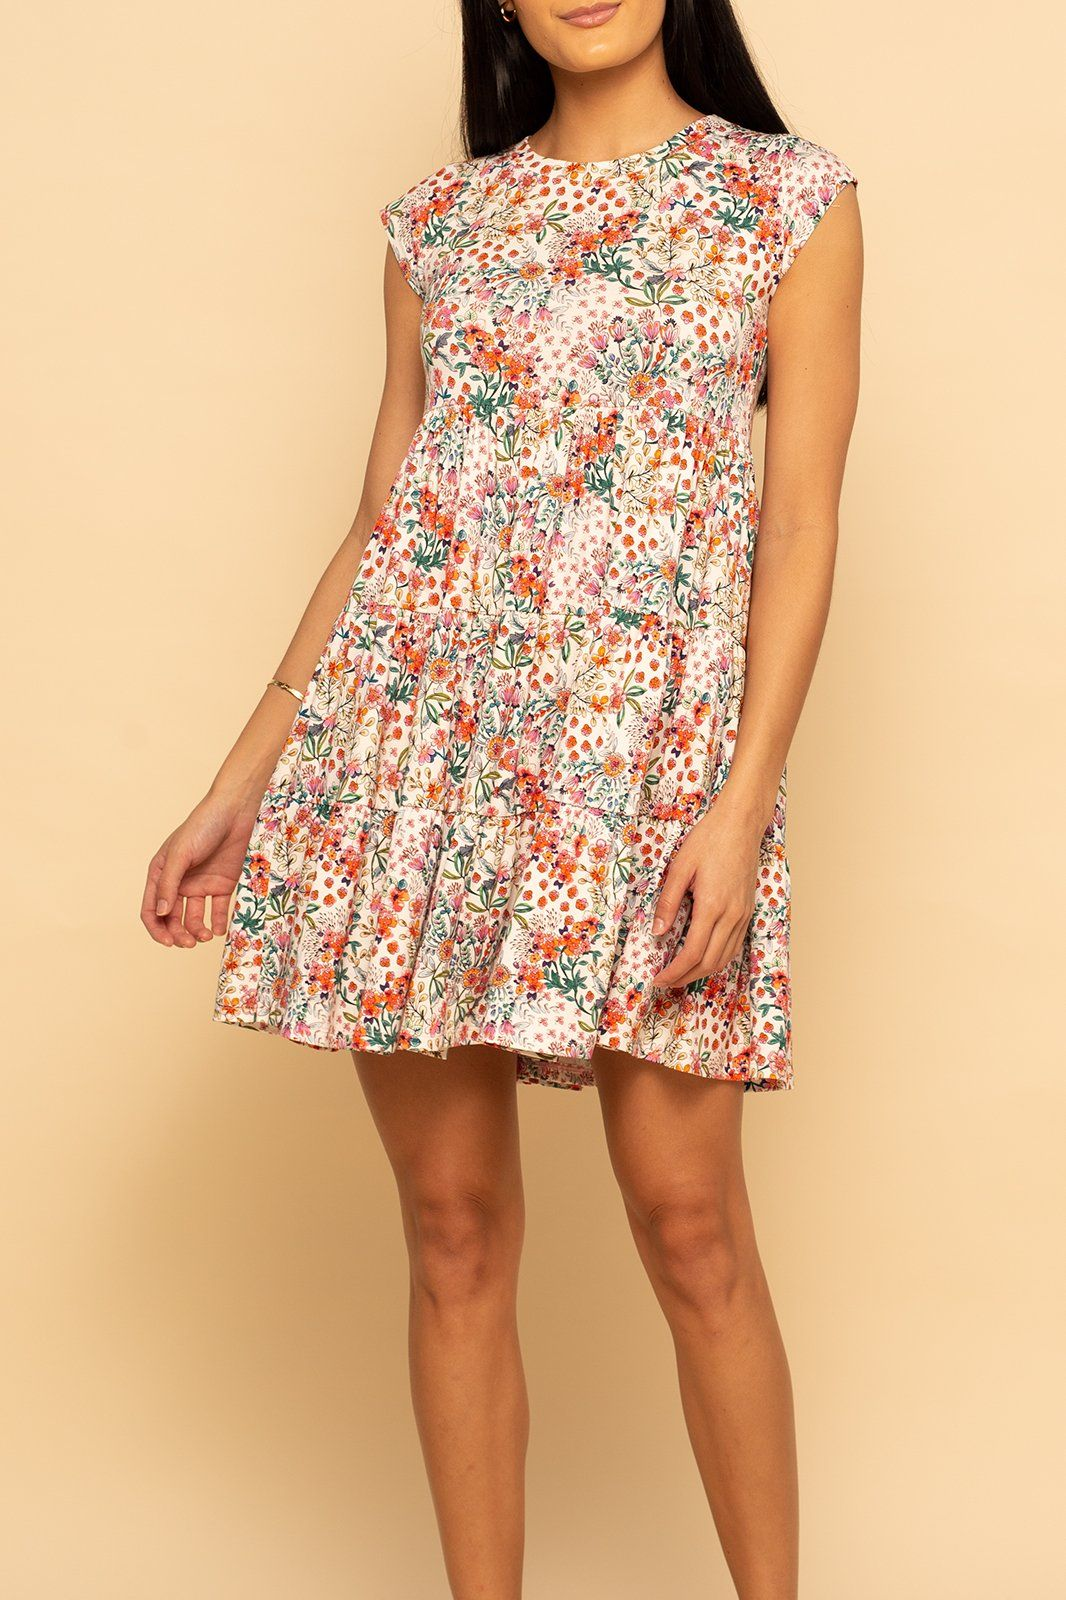 Babydoll Dress - Ditsy Colorful Floral - Shore